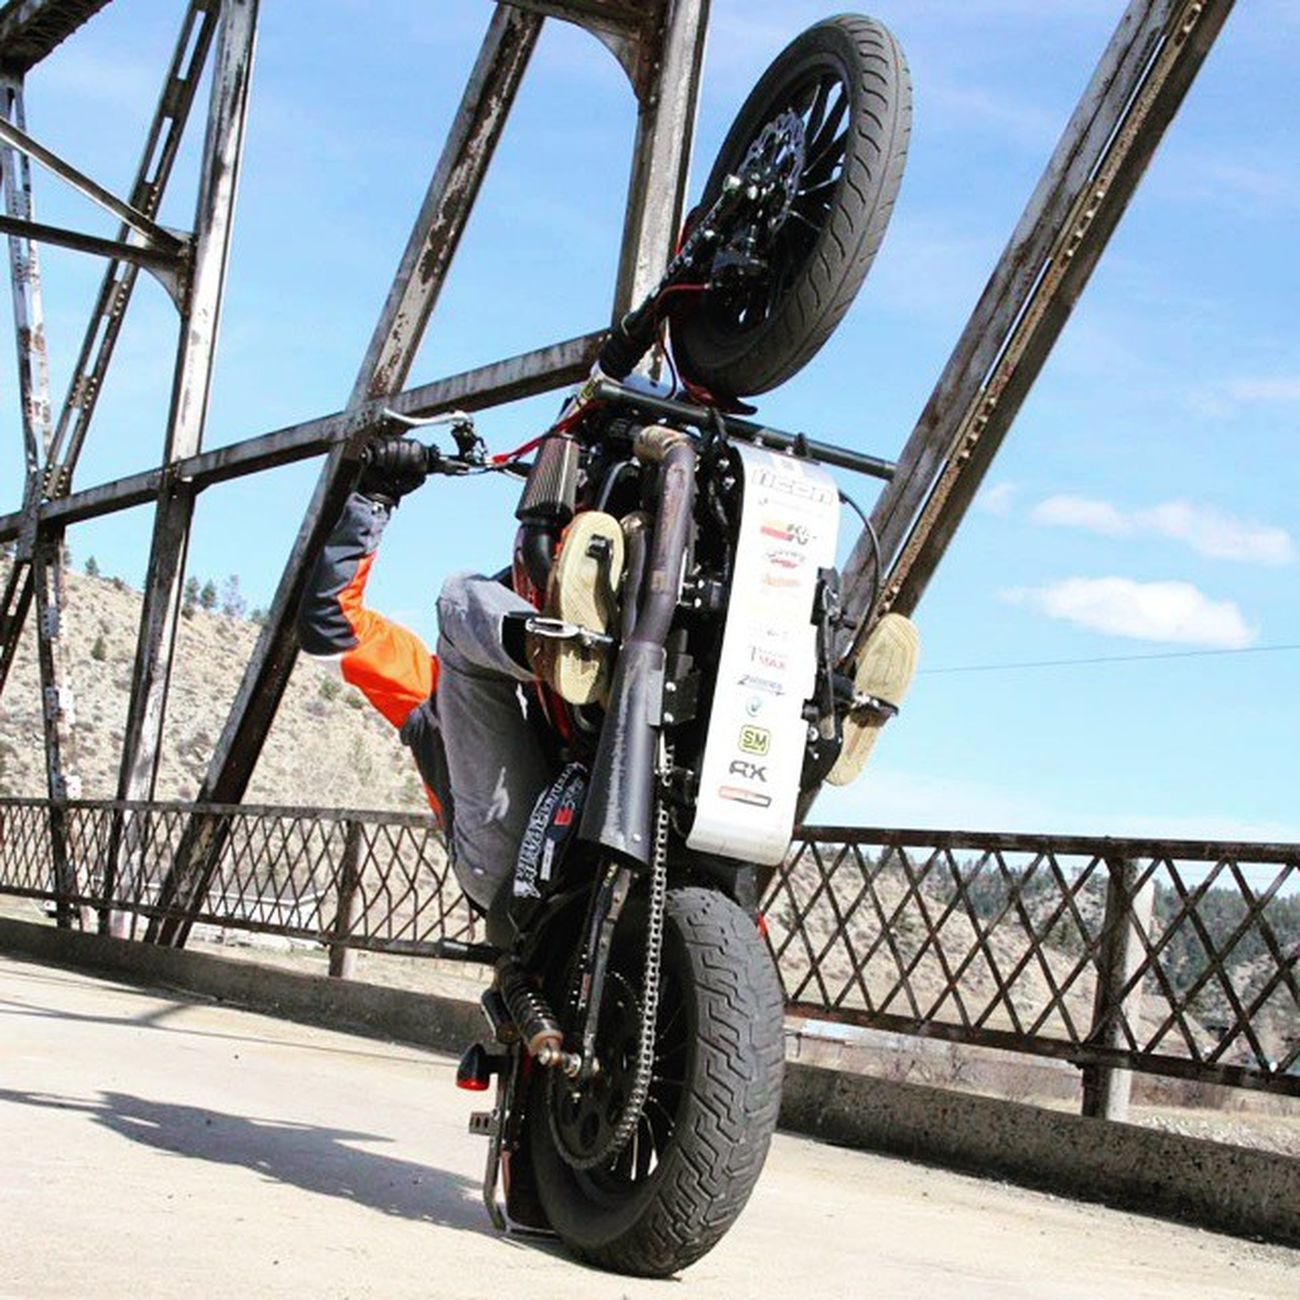 Harley Stunts 12oclock Tailscrap foreveryoung stuntstyle life stuntersblog